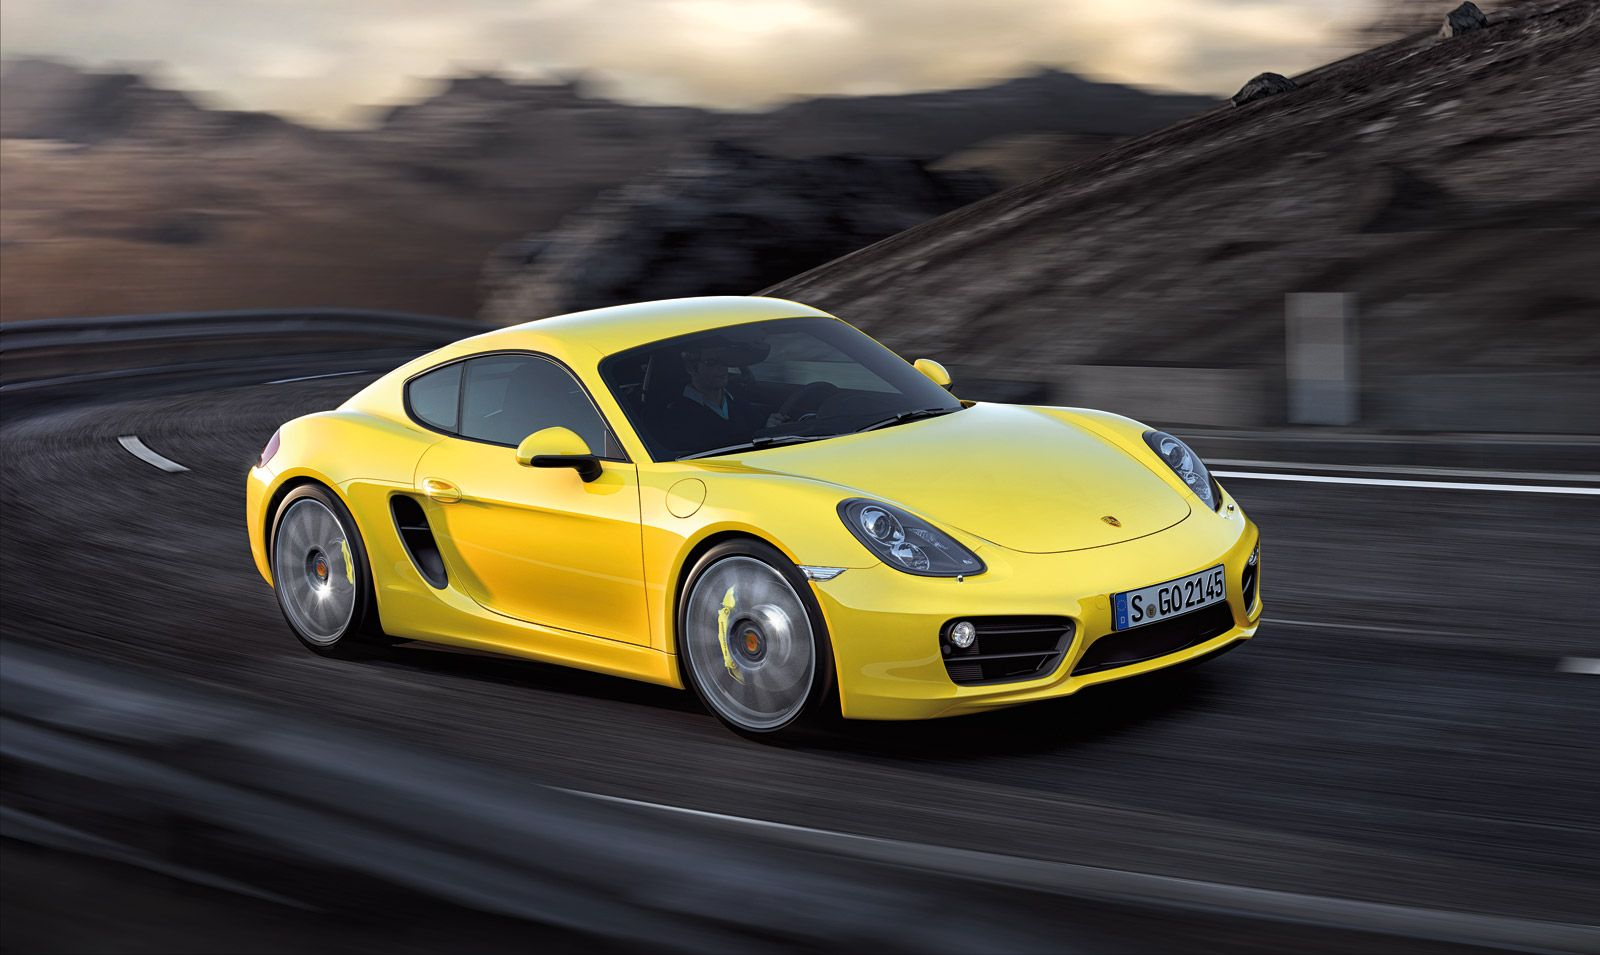 the 2014 porsche cayman is one of the top rated sports cars on tcc rh pinterest com